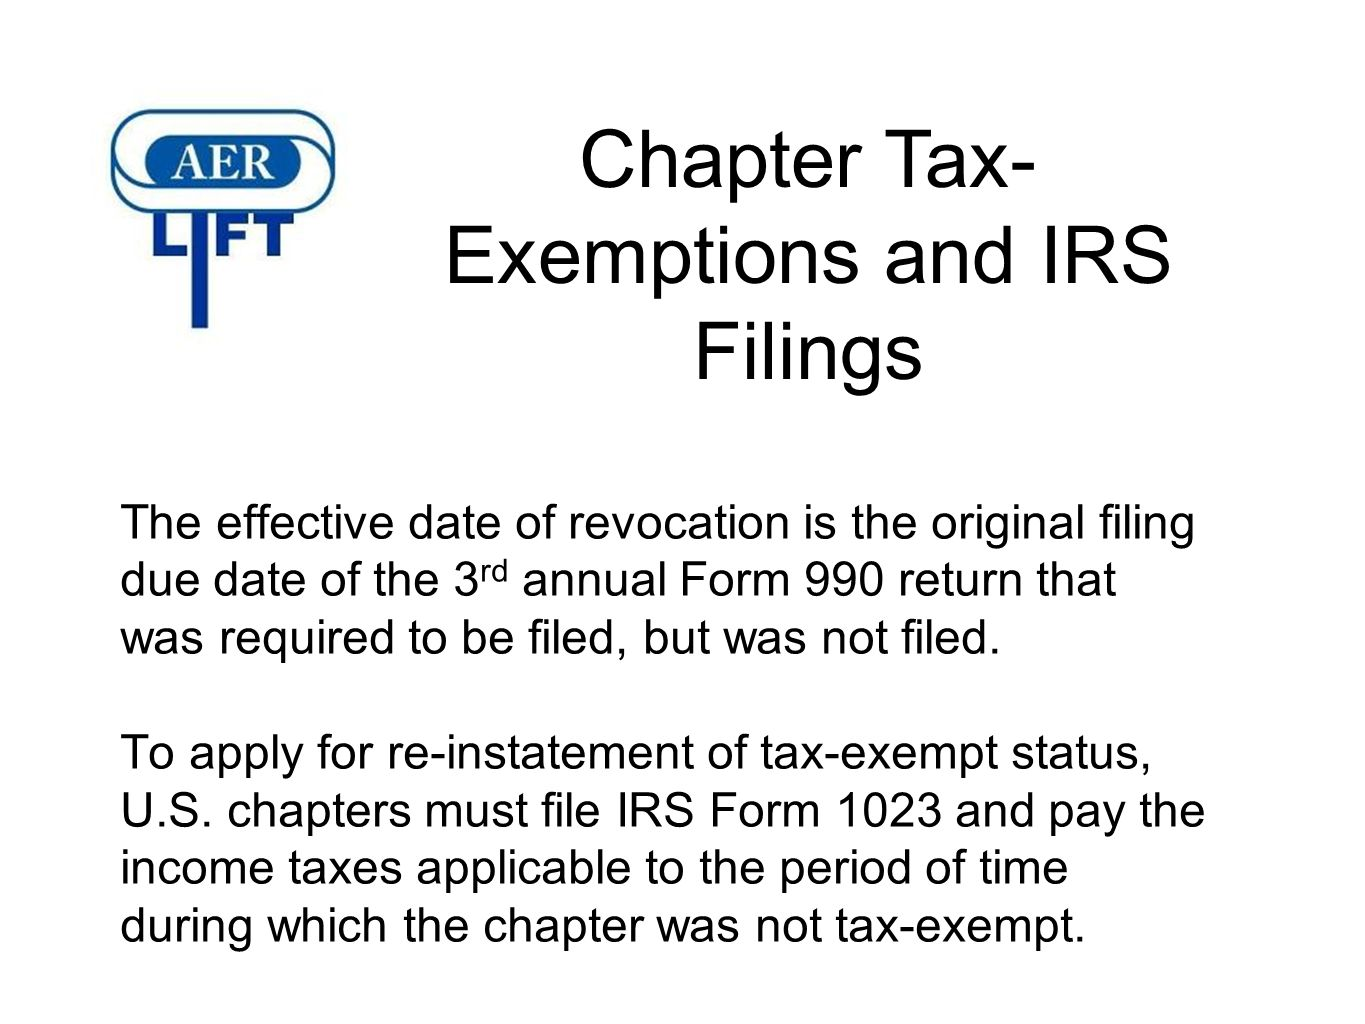 Irs form 990 due date gallery standard form examples the roles and responsibilities of secretary and treasurer ppt chapter tax exemptions and irs filings falaconquin falaconquin